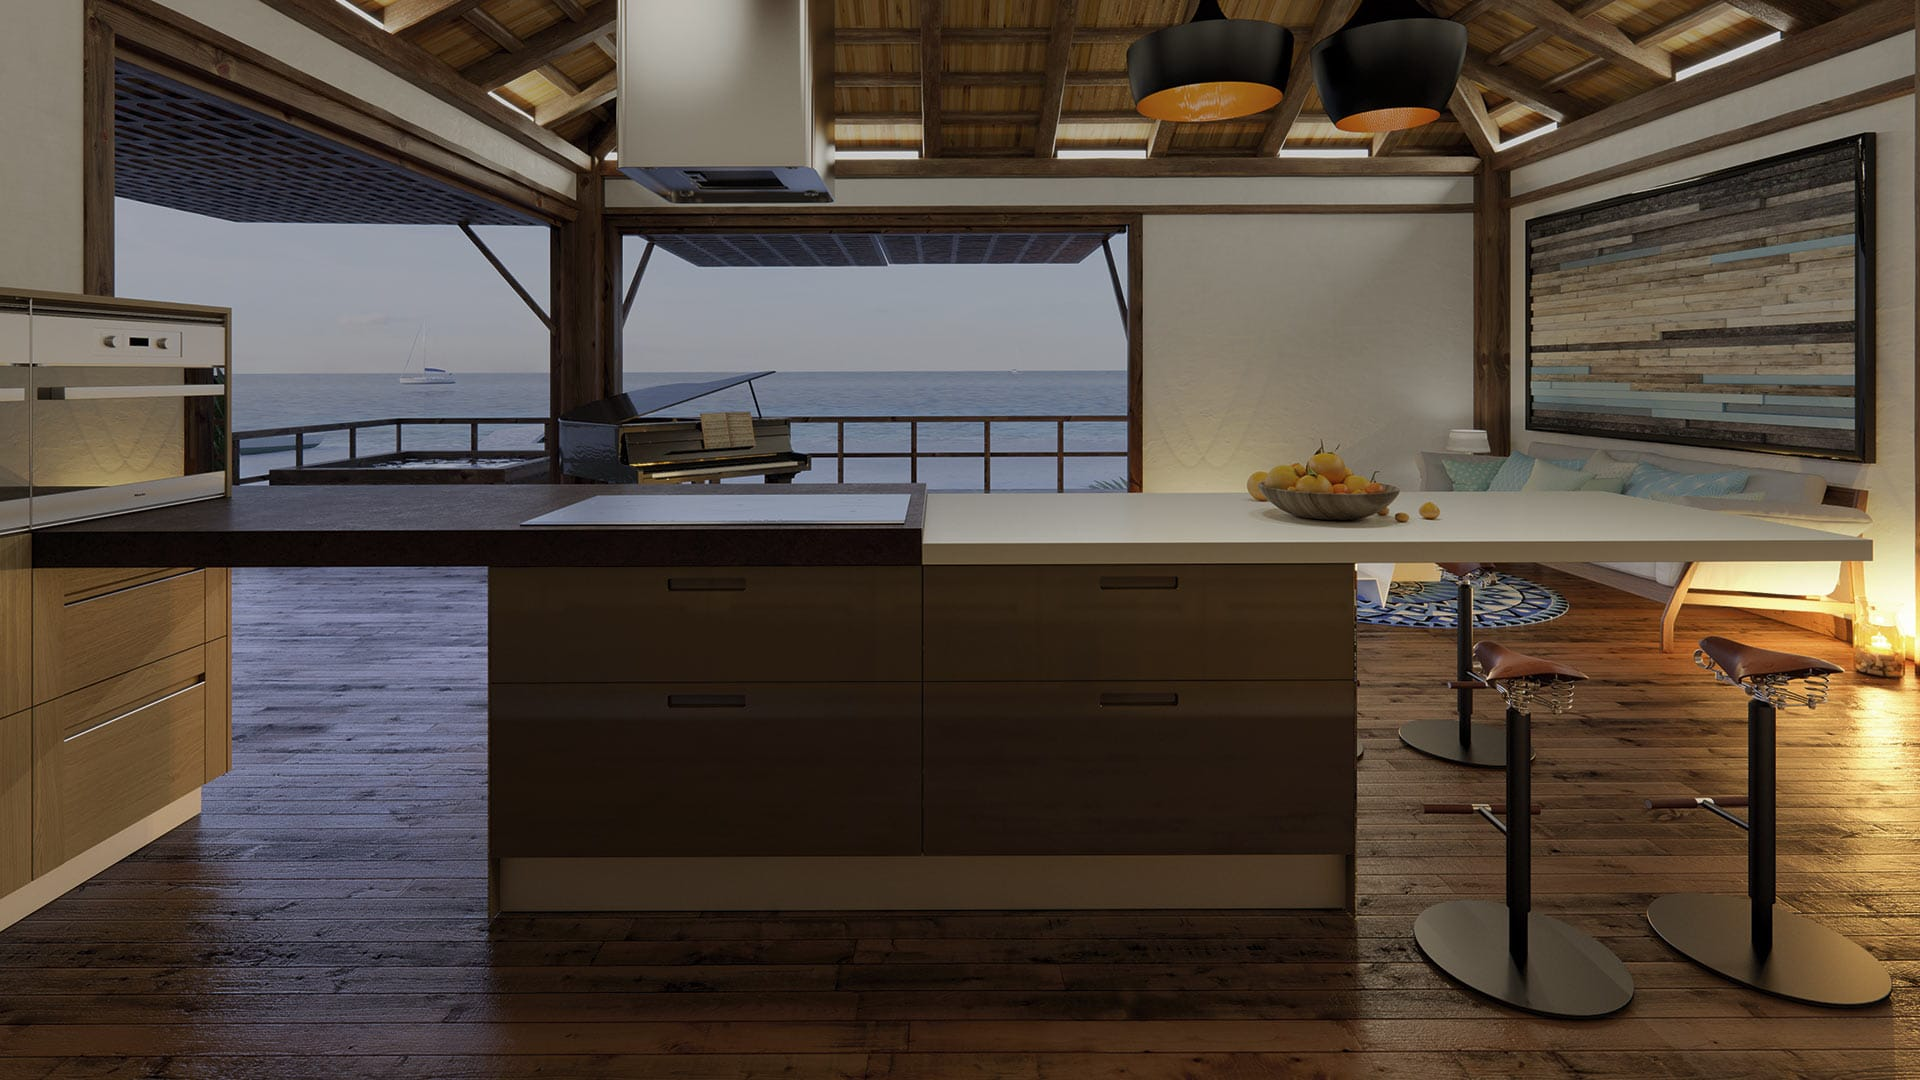 designer kitchen furniture, kitchen furniture